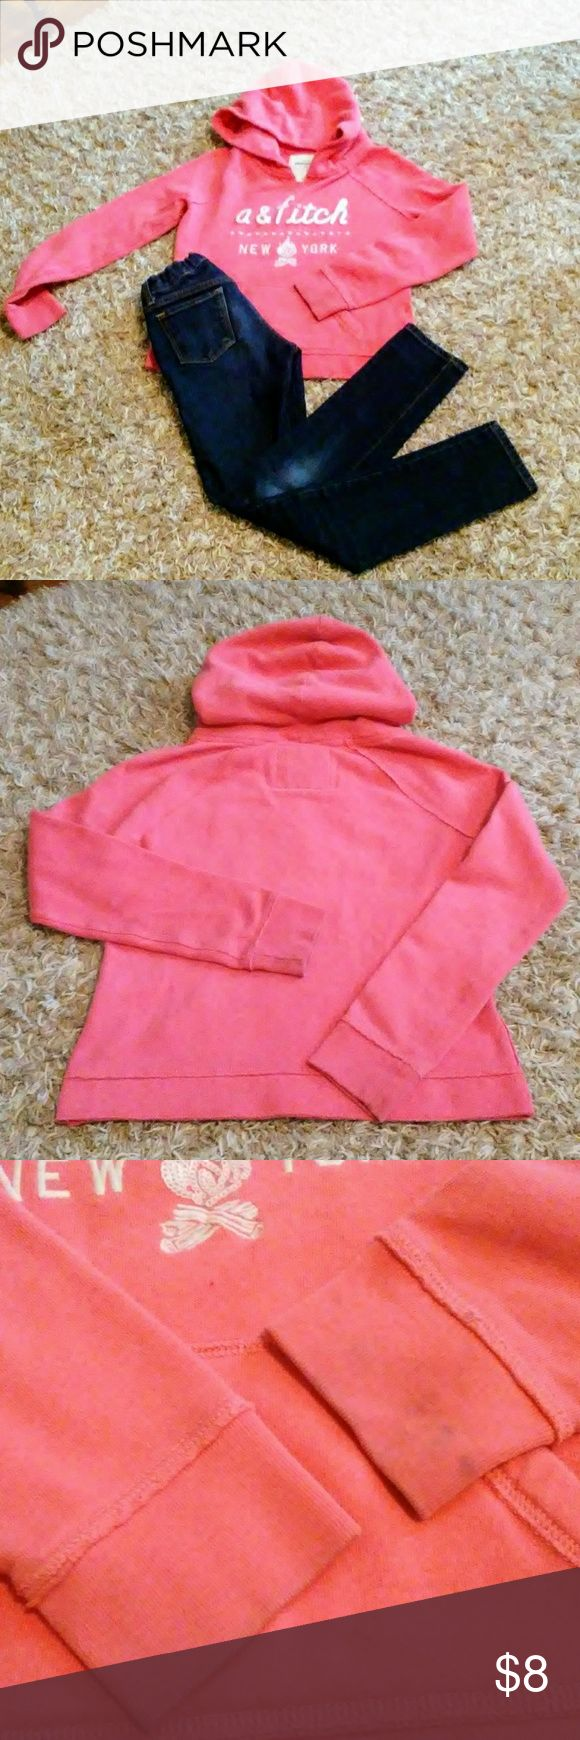 *Abercrombie kids Girls Hoodie Sz 10 BUNDLE TO SAVE 15% *also eligible for buy 4 get 1 offer  Girls size 10 hoodie Abercrombie Seems like would fit a size 8 more since washings **see pics for staining around cuff abercrombie kids Shirts & Tops Sweatshirts & Hoodies